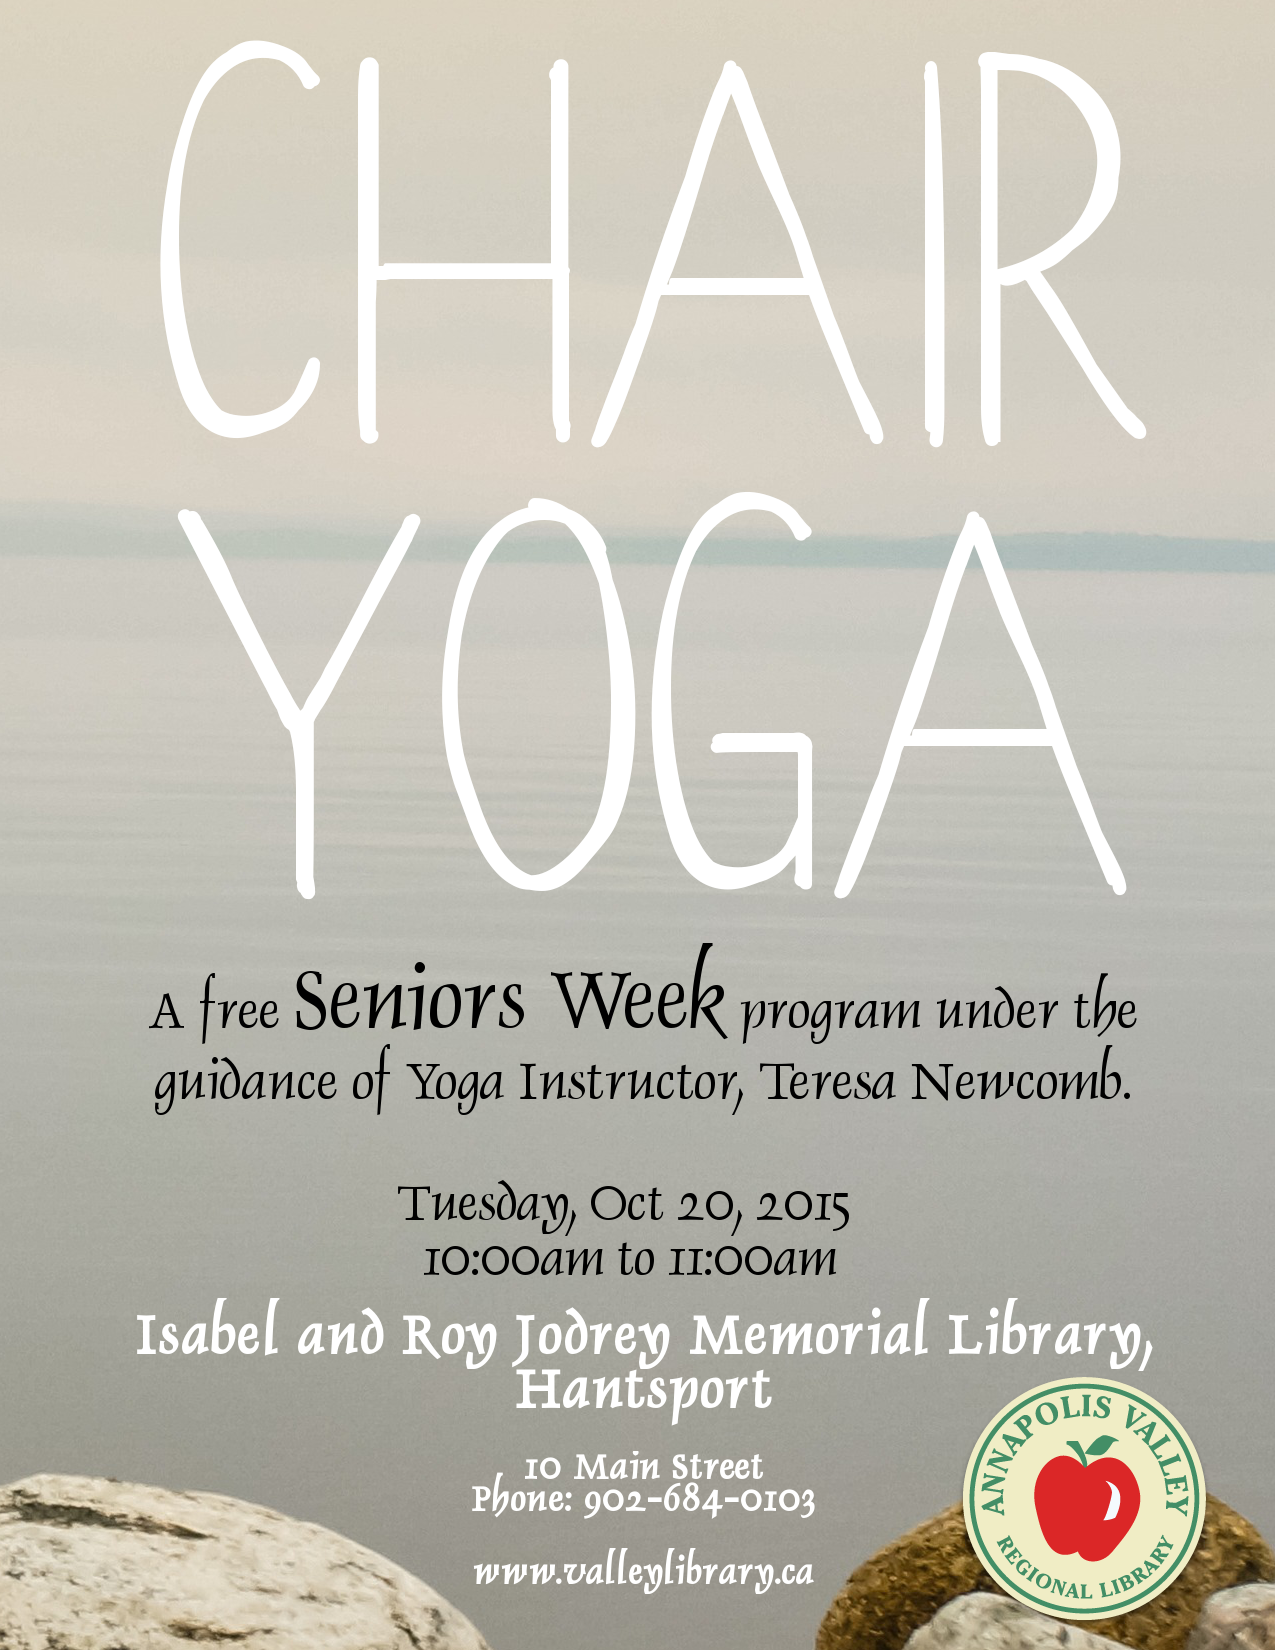 Diy Google Calendar : Chair yoga for seniors at isabel roy jodrey memorial